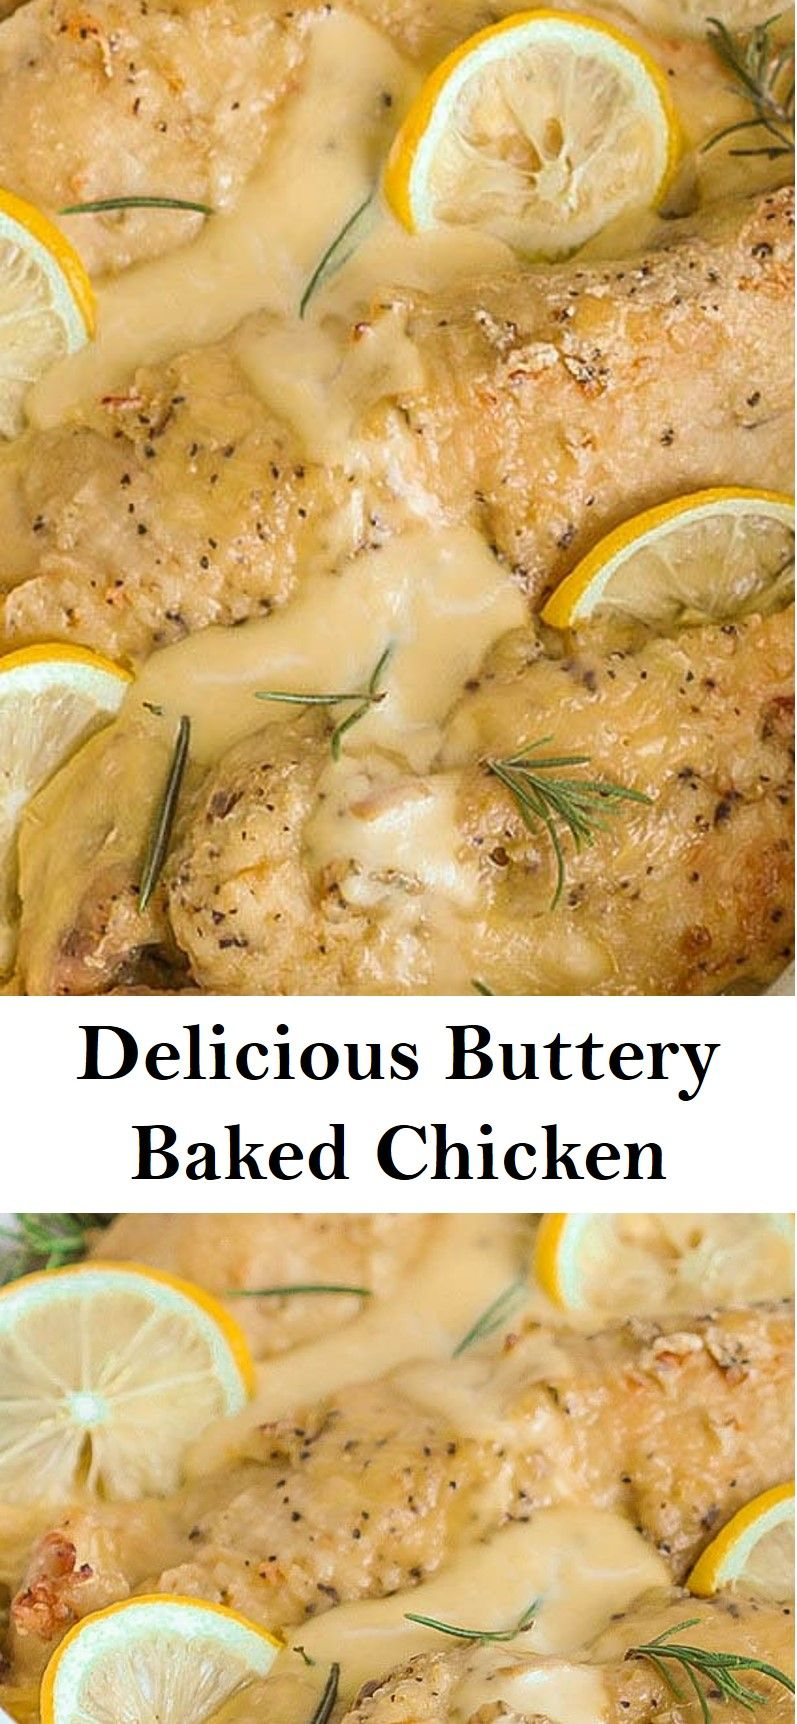 Delicious Buttery Baked Chicken #dinnerideas2019